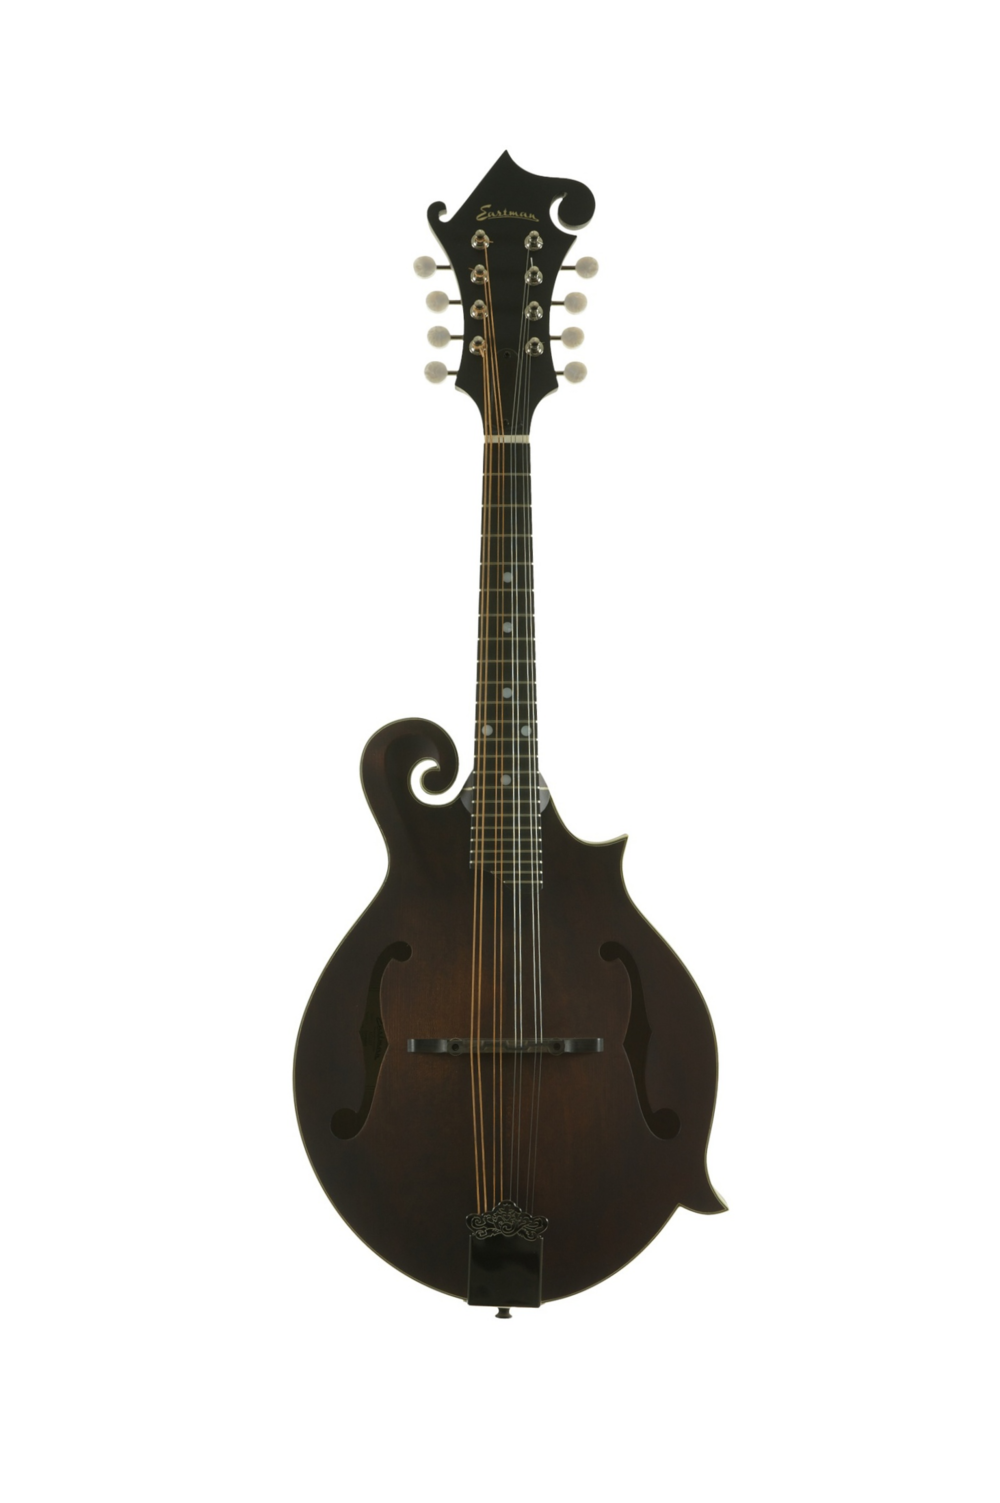 F-STYLE The mandolin of choice for traditional bluegrass and country players, Eastman F-Style Mandolins are lovingly handcrafted with premium tonewoods and time-honored traditional methods.